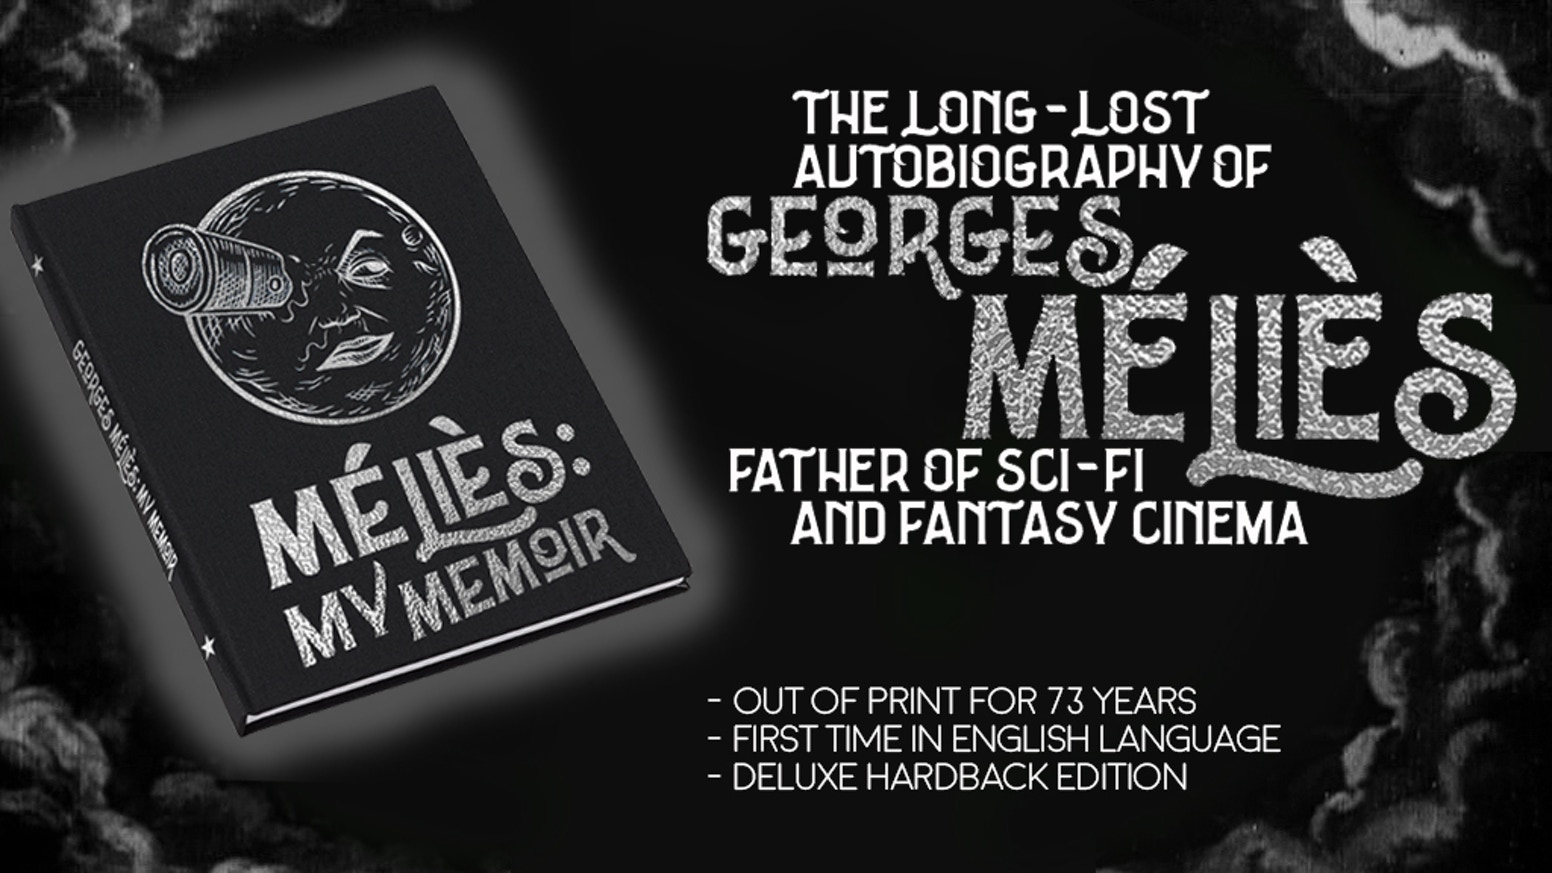 The autobiography of George Melies, the father of cinema. Available for the first time since 1945, finally translated into English.